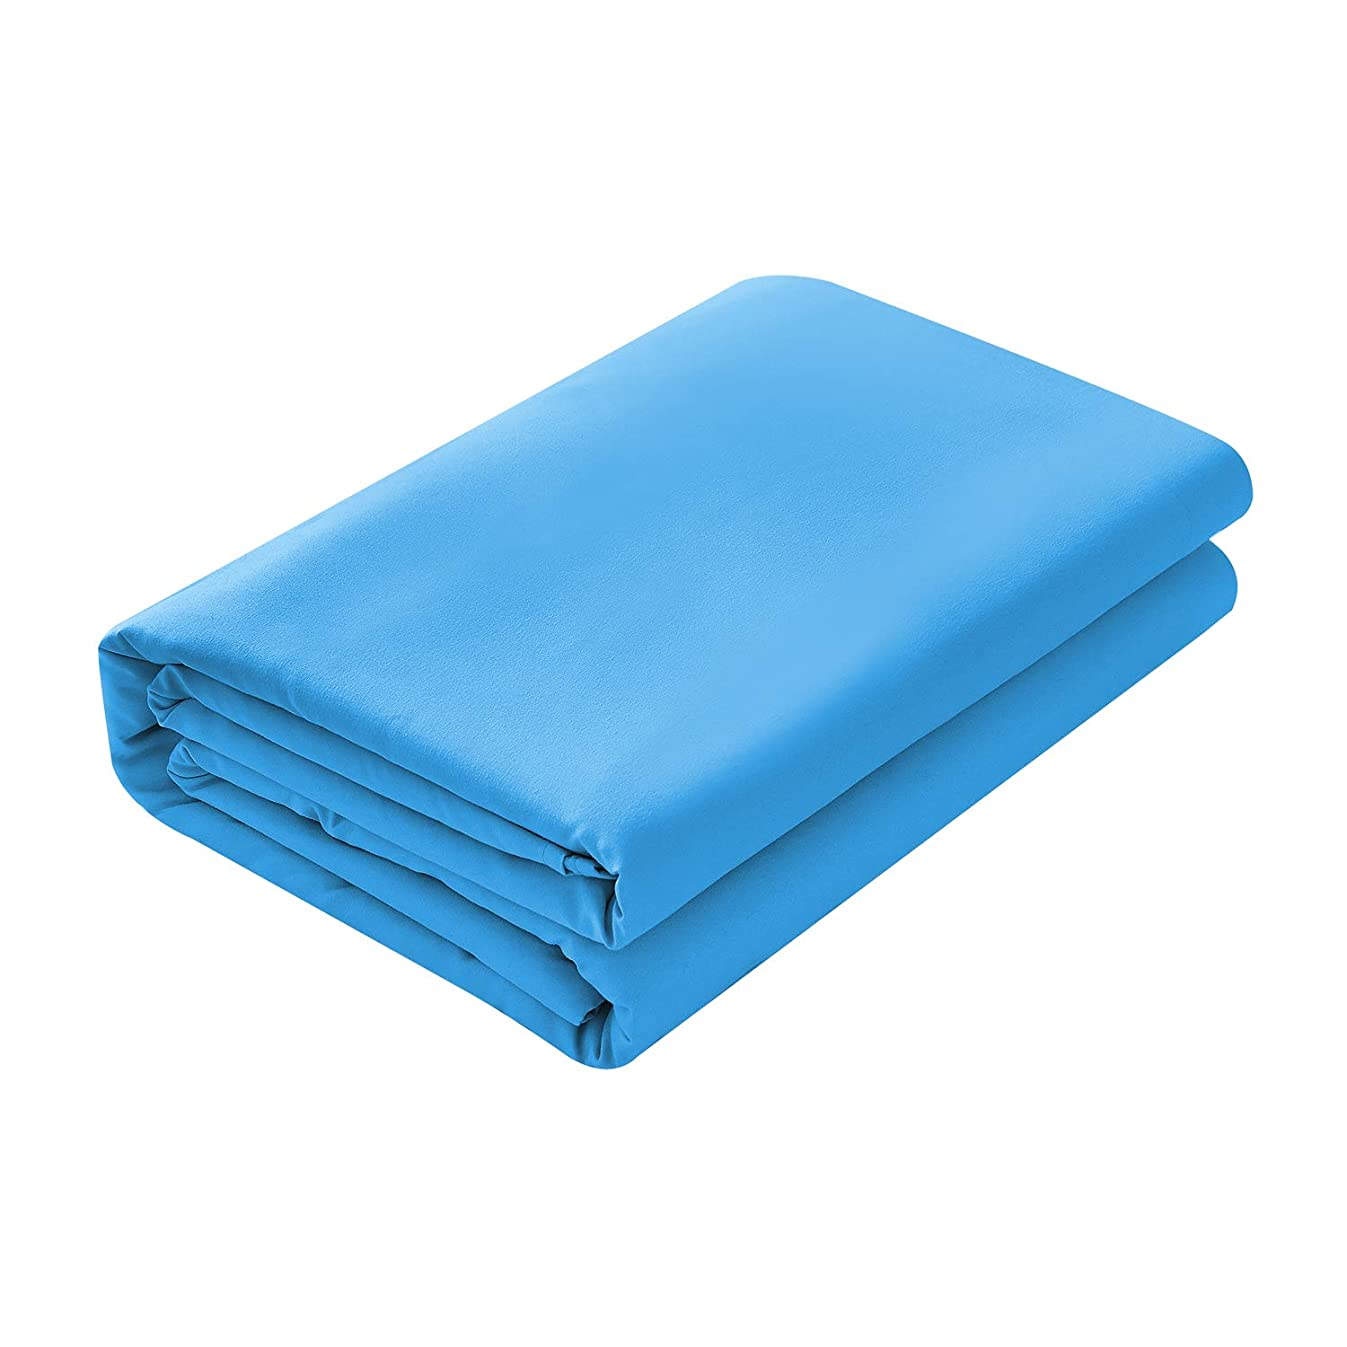 Basic Choice Flat Sheet, Breathable, Extra Soft Microfiber 2000 Bedding Top Sheet - Wrinkle, Fade, Stain Resistant - Hypoallergenic - (Blue, Twin)